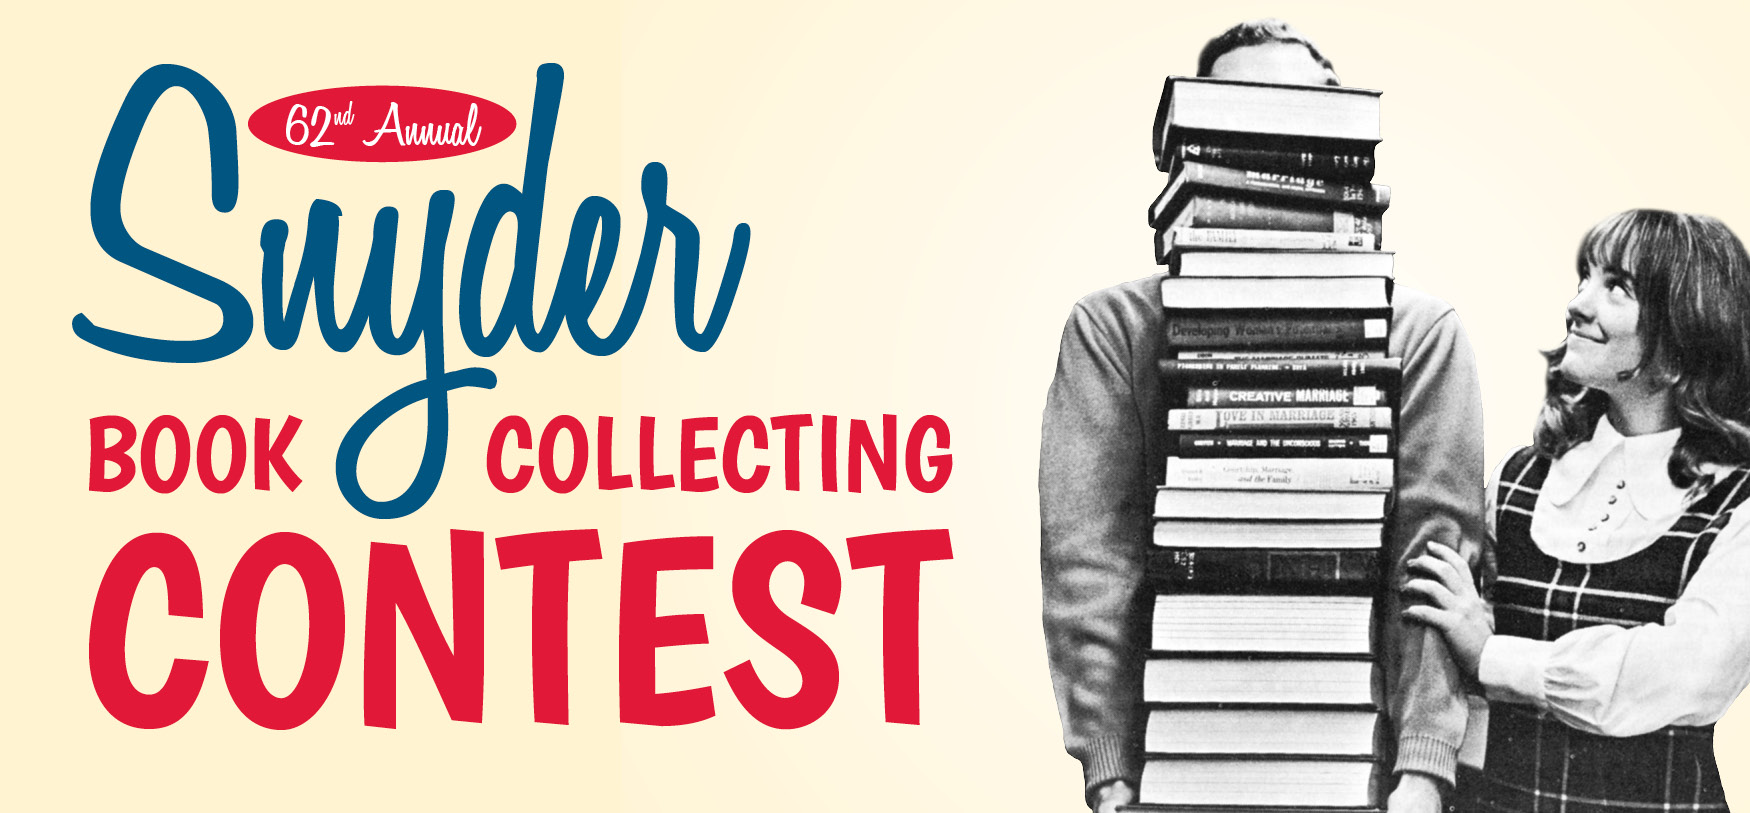 62nd Annual Snyder Book Collecting Contest (display banner)